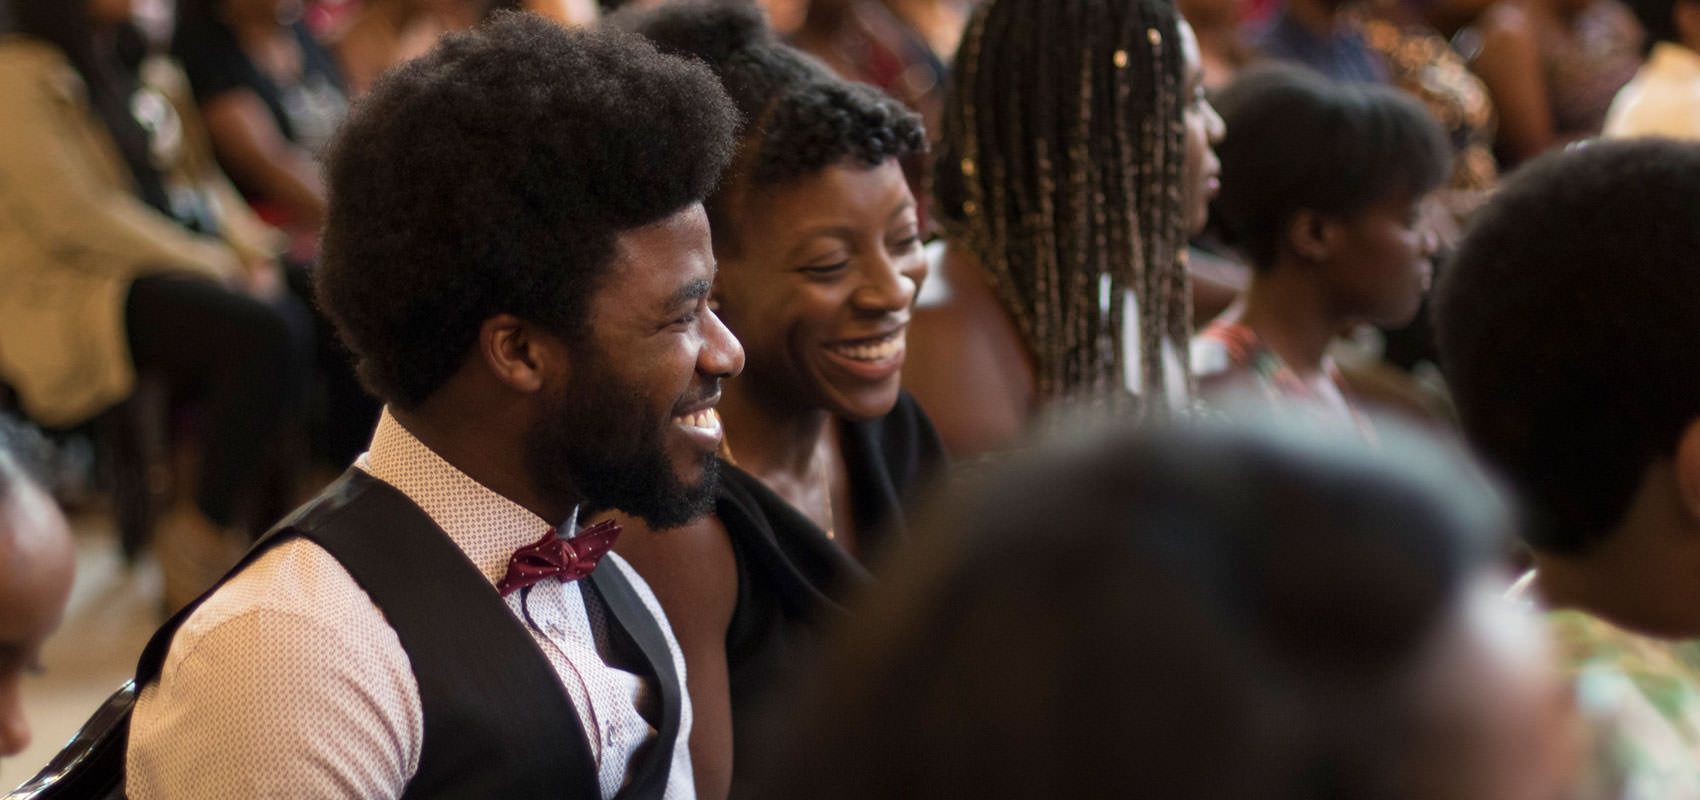 Photo of two smiling students at the first-ever Black graduation celebration at U of T.